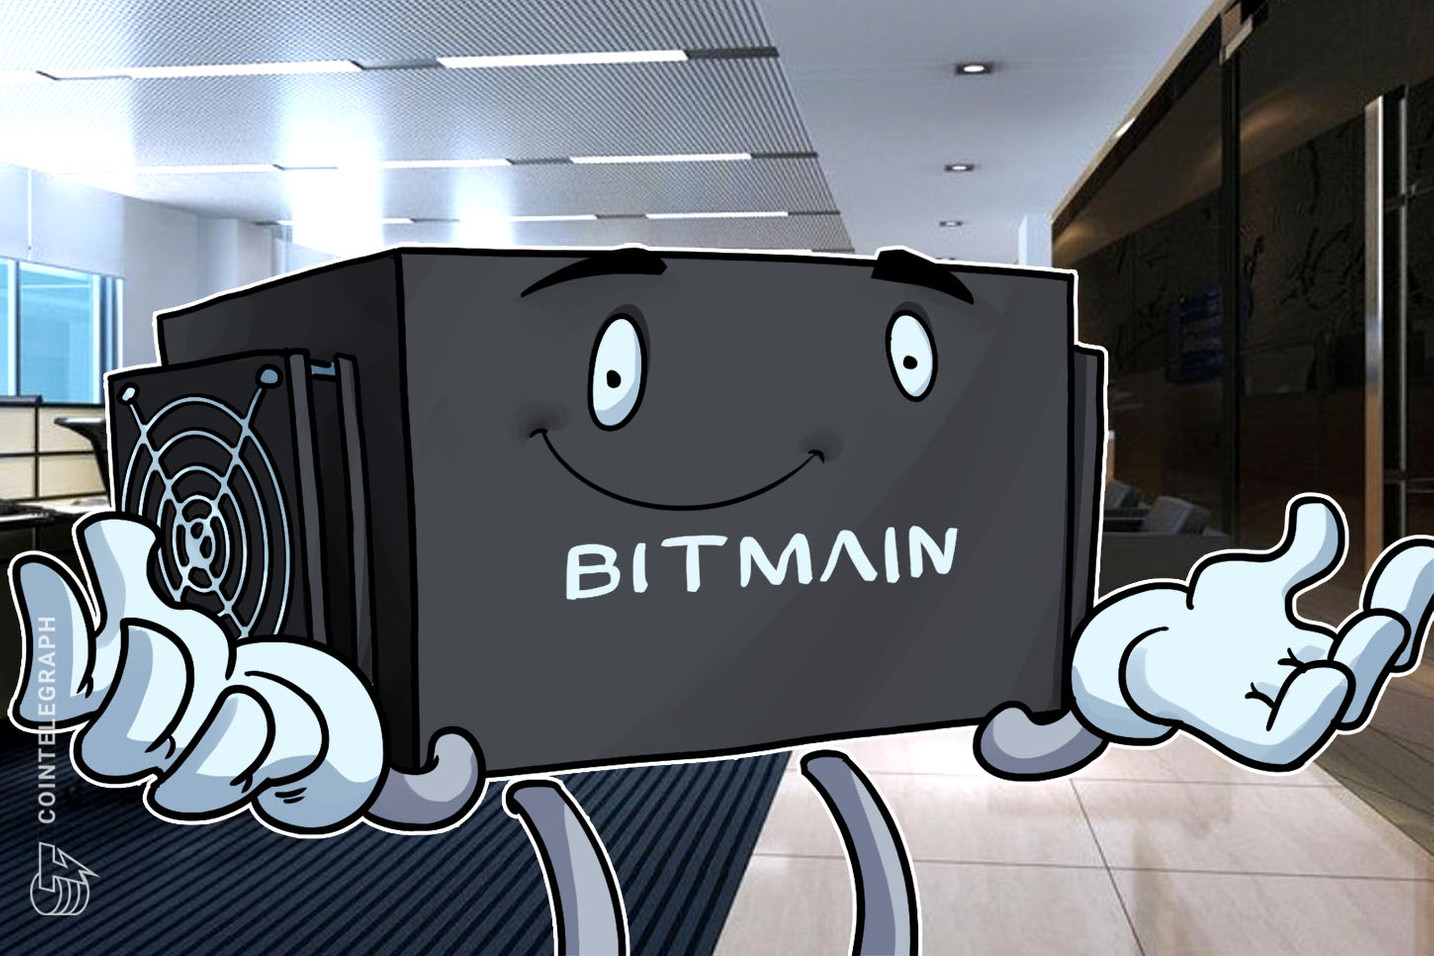 China: Bitcoin Mining Behemoth Bitmain Releases New 7nm Antminer Hardware